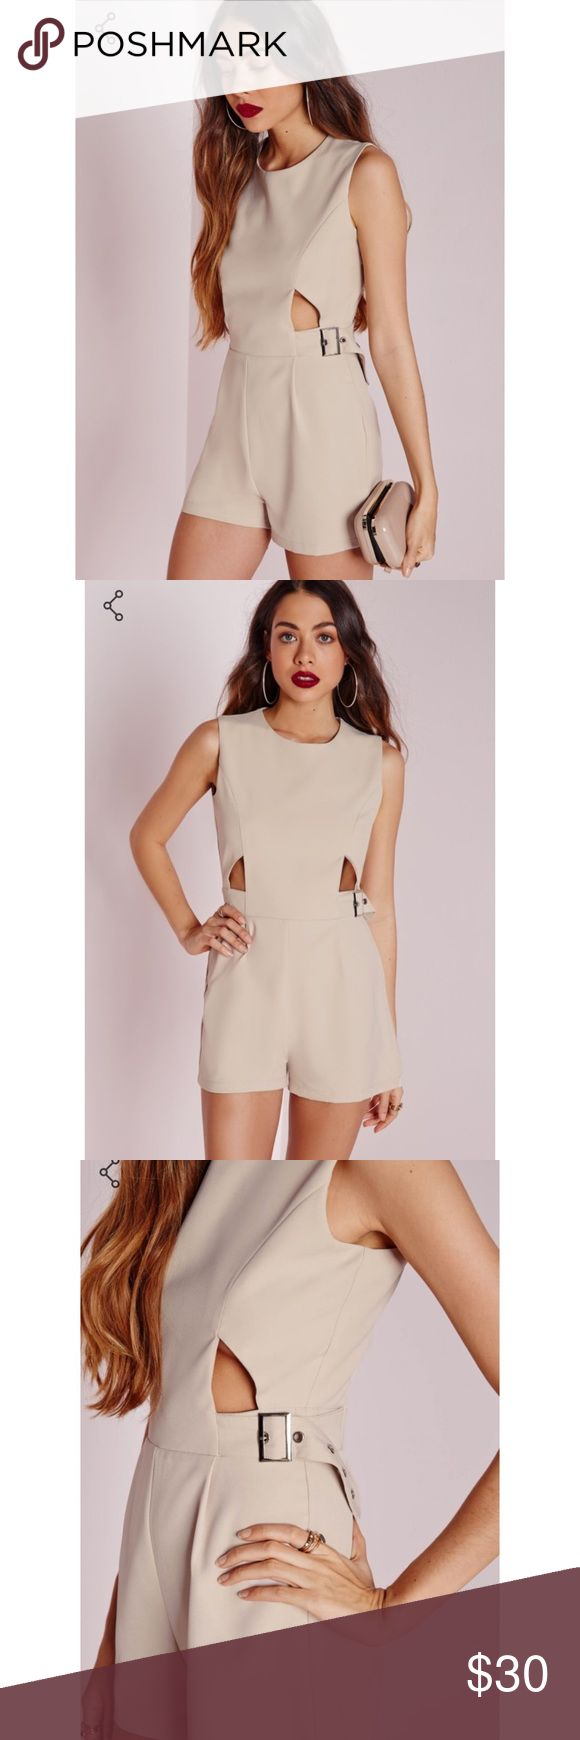 NWT Missguided Buckle Playsuit US 8 • Sold out online • Originally $47.60 Missguided Pants Jumpsuits & Rompers